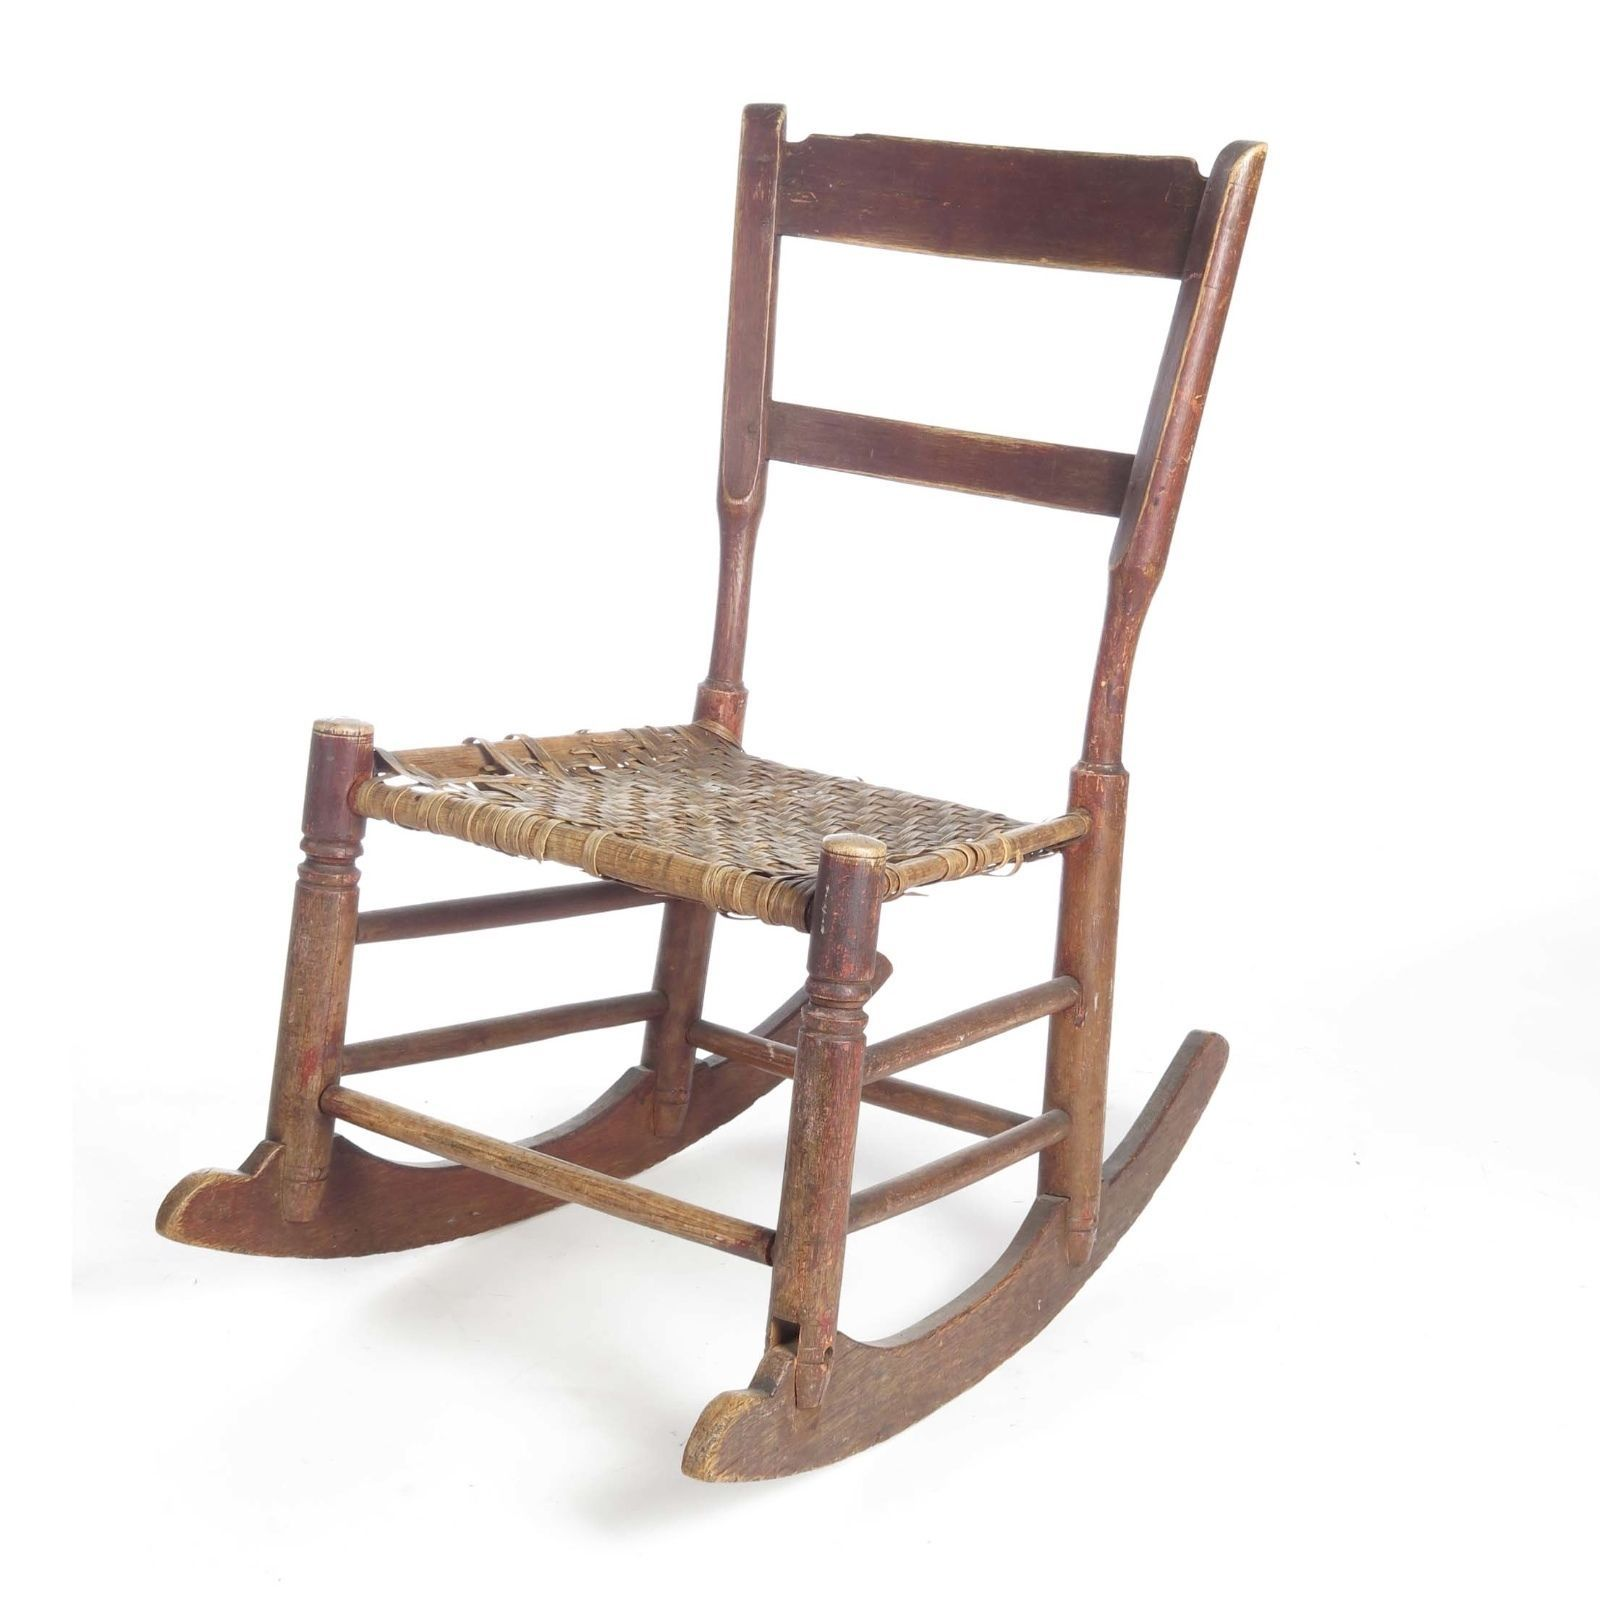 Shenandoah valley childs chair